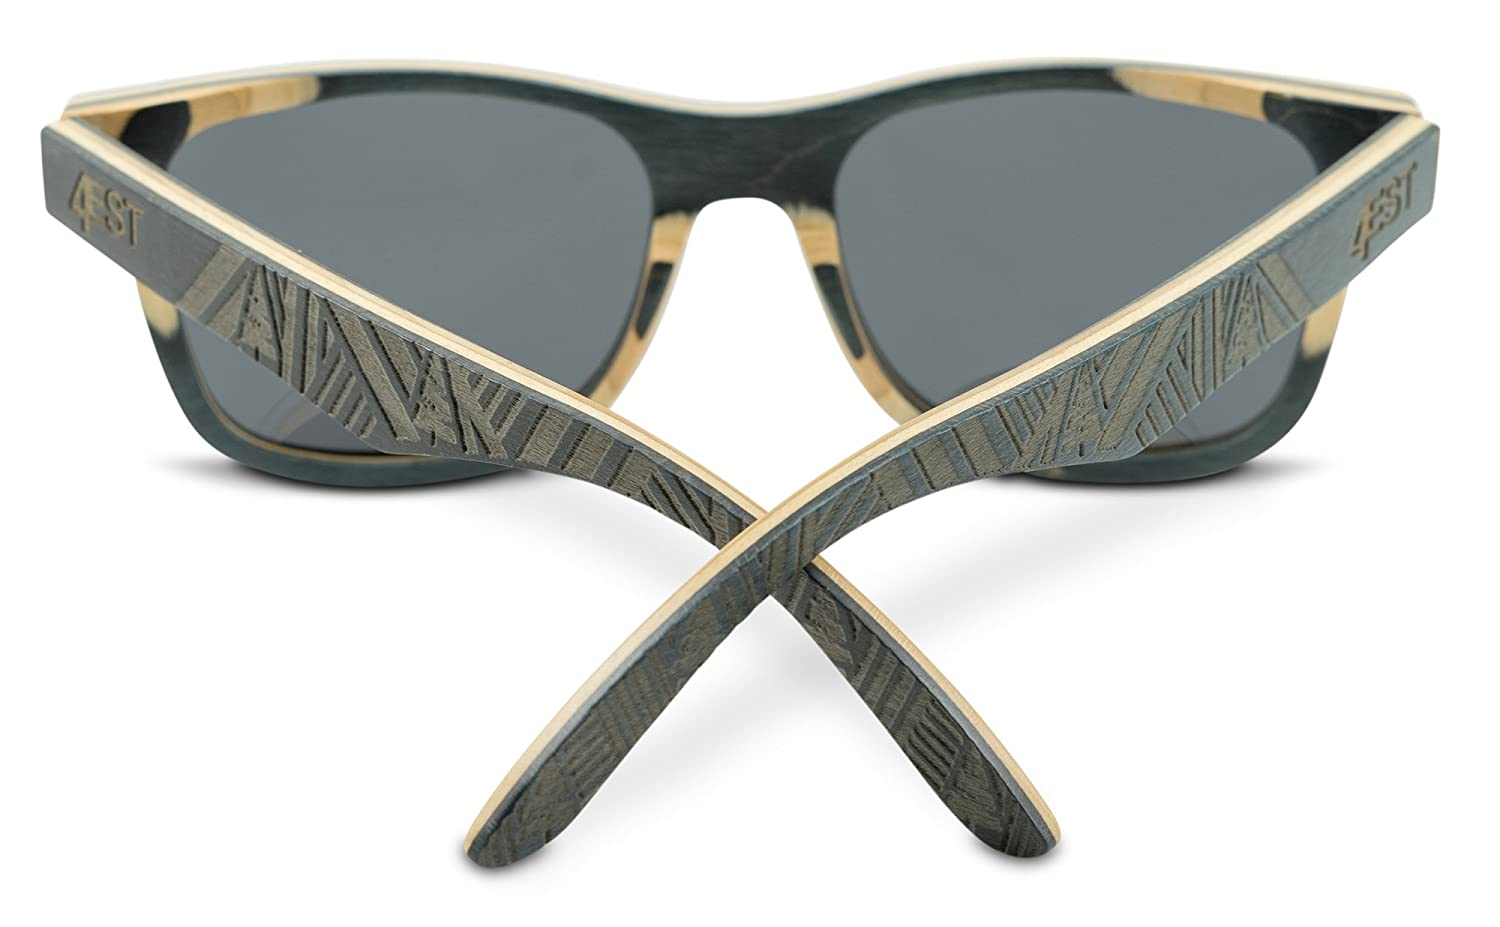 7de1895875d07 Amazon.com  Wood Sunglasses made from Maple -100% polarized shades that  float  Clothing